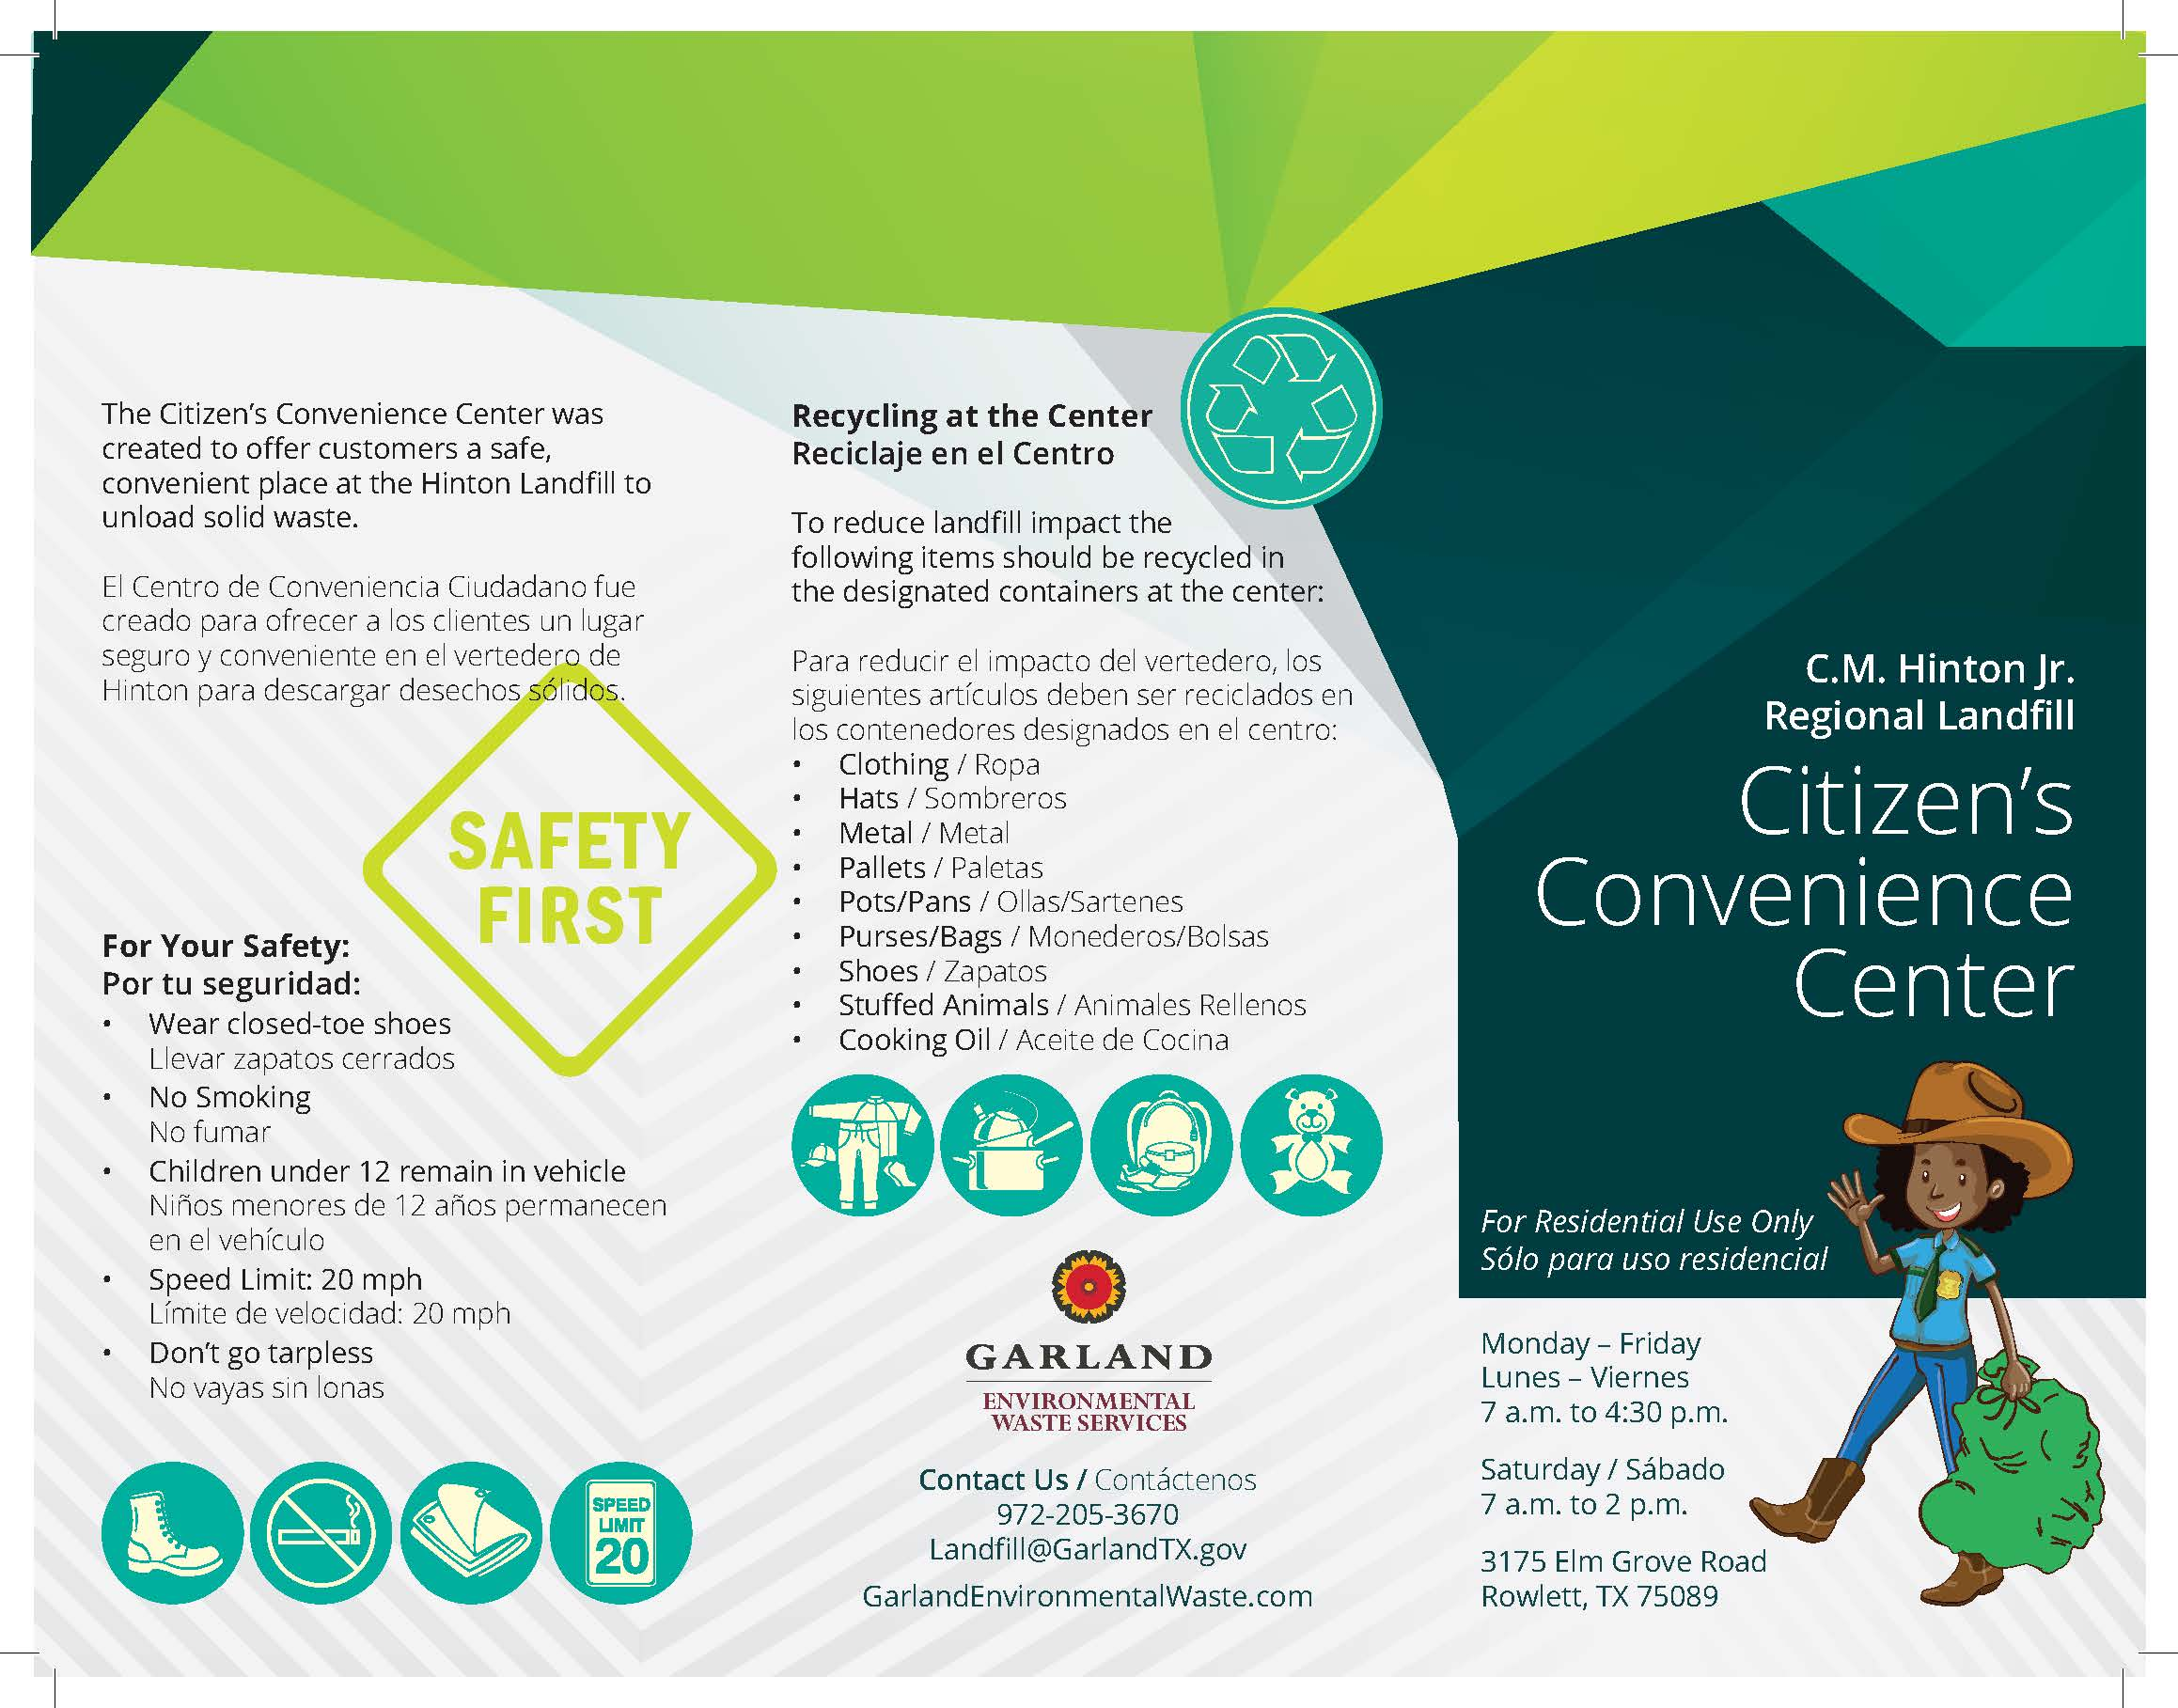 Citizens' Convenience Center Brochure